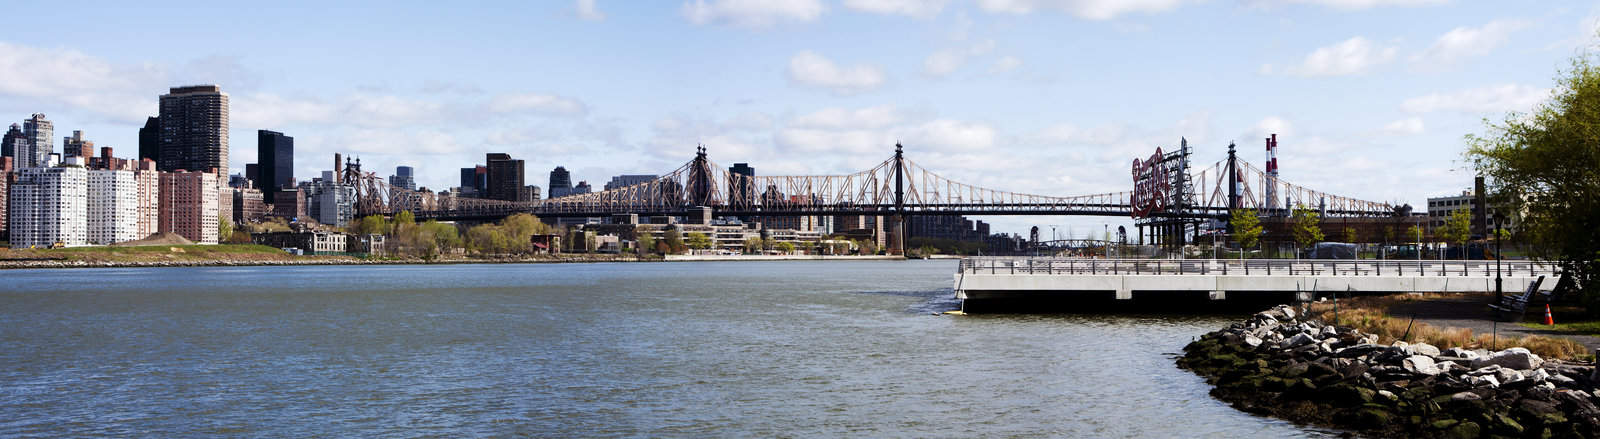 Hunters Point Queens, New York Private Investigator